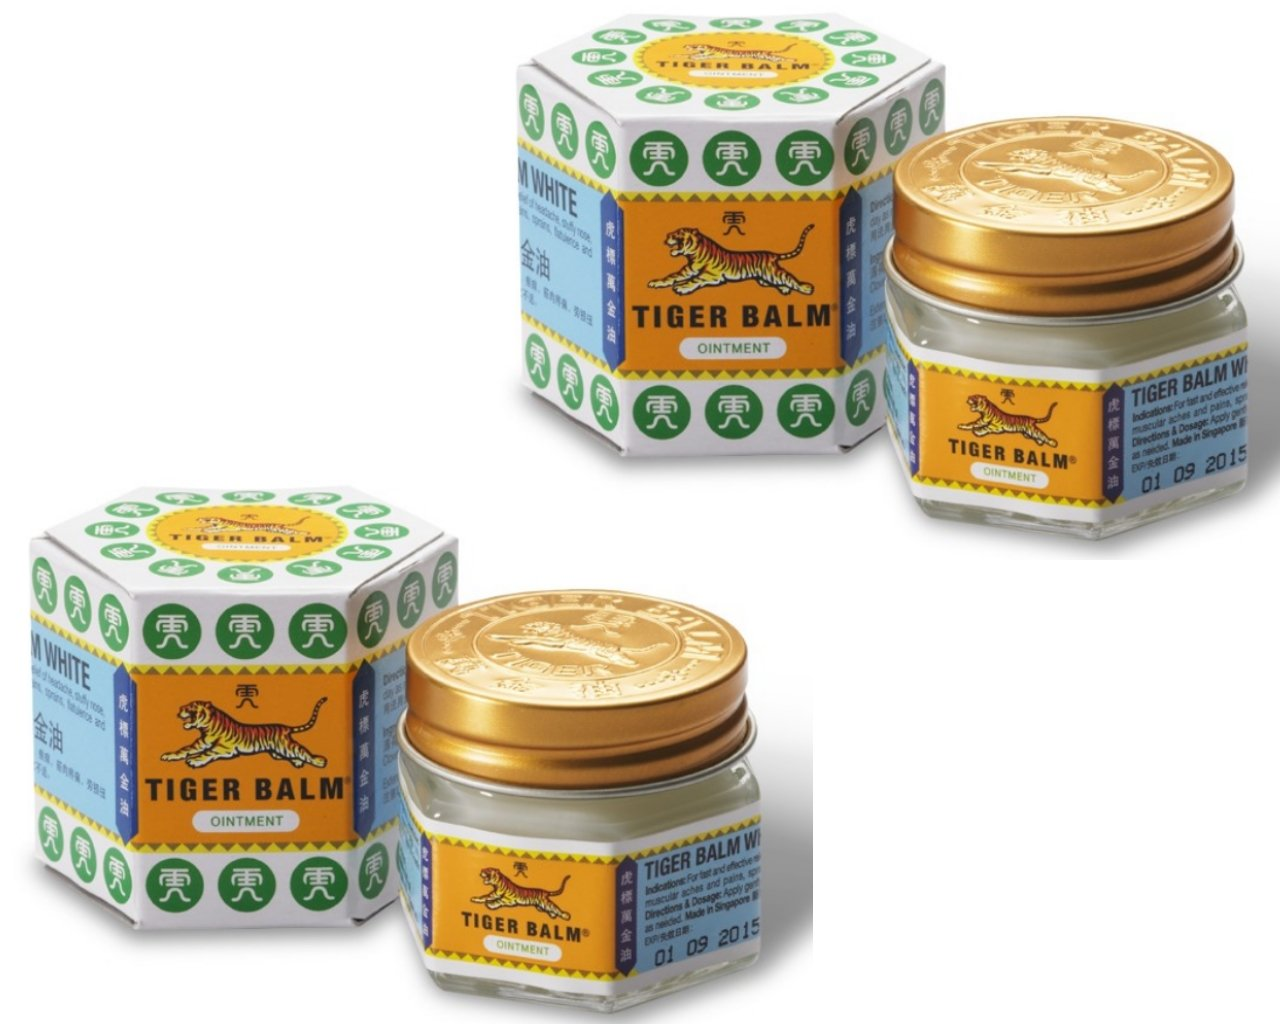 2X Lot Tiger Balm White Medicated Ointments 30g - insect bites , relieve itching & headache remedies